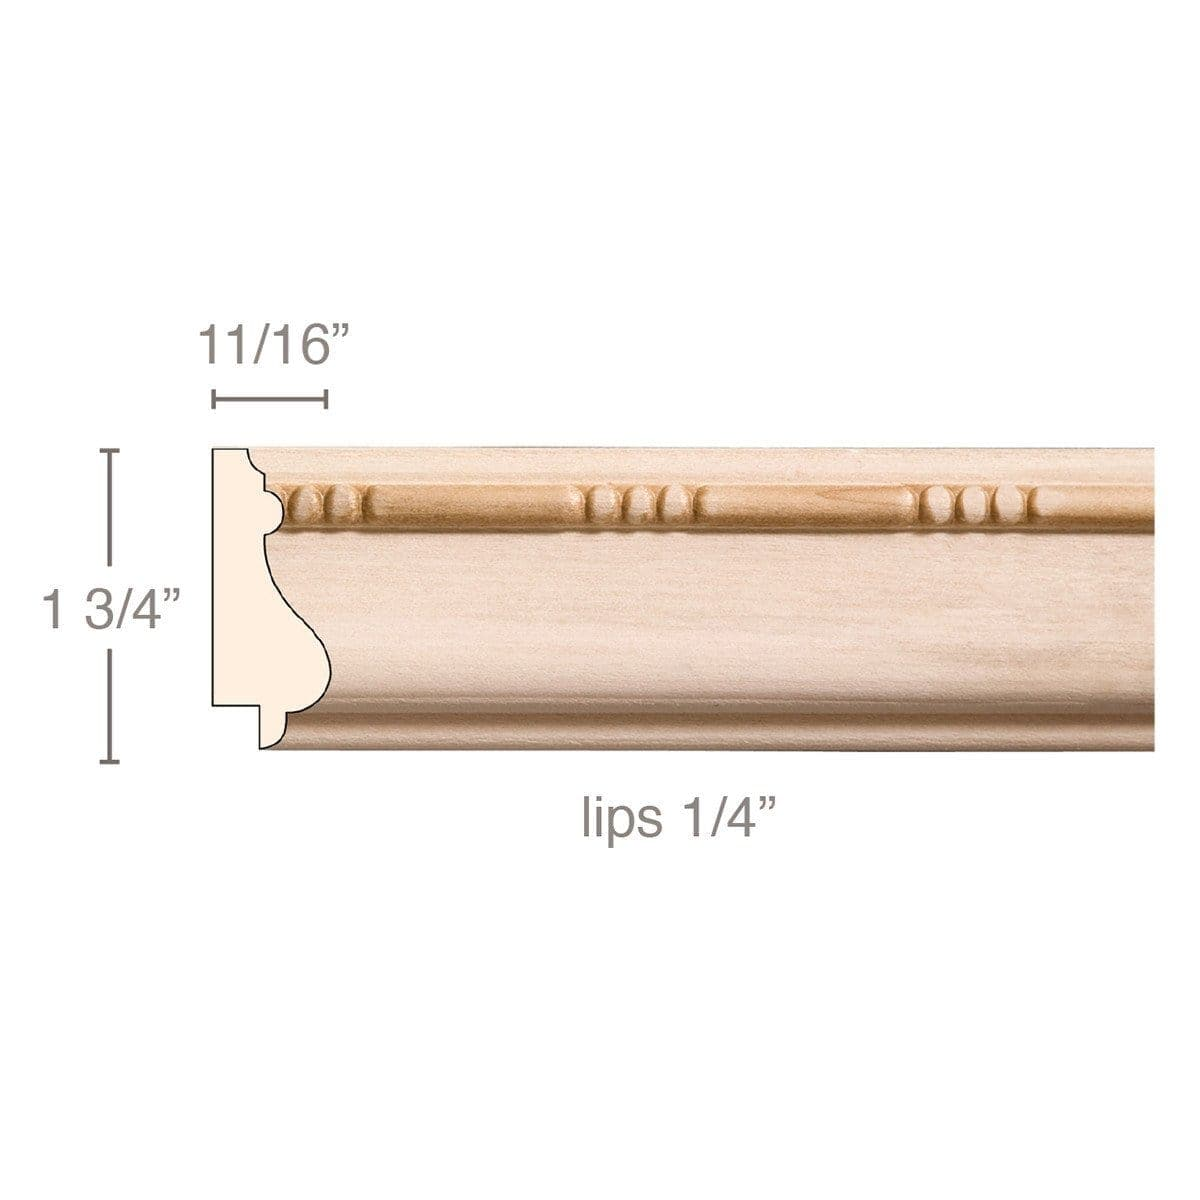 "Bead and Barrel (Lips 1/4), 1 3/4""w x 11/16""d"